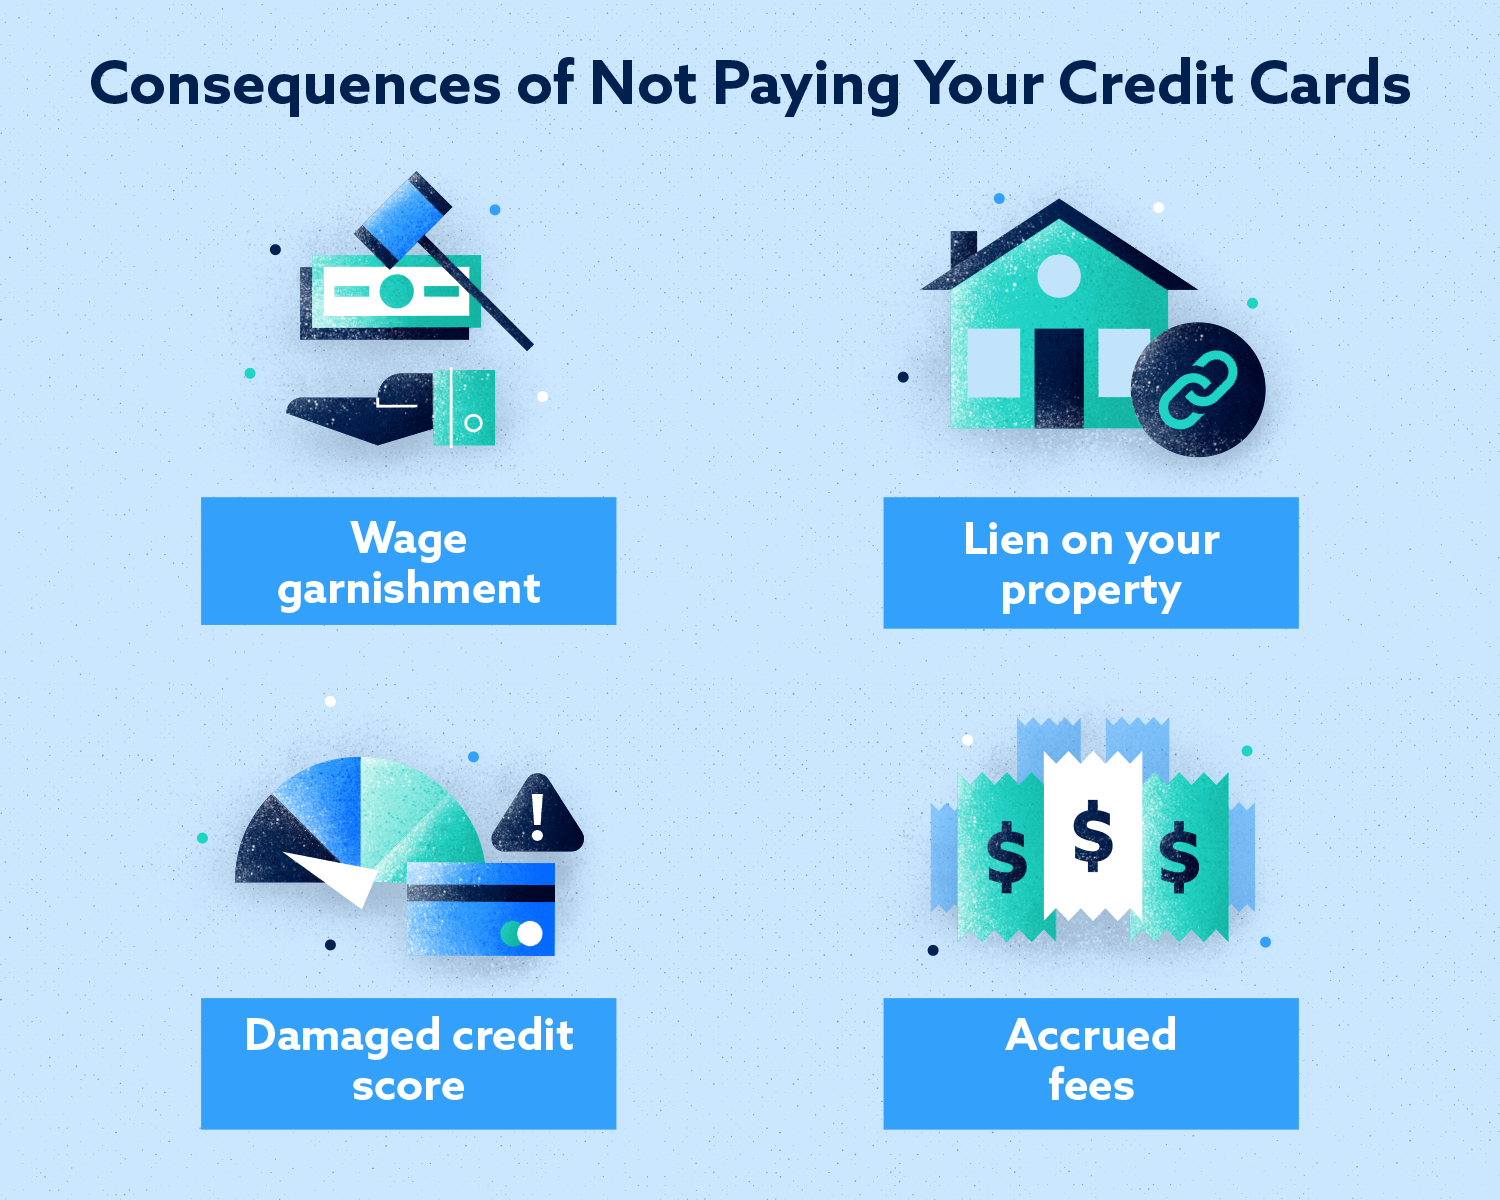 Consequences of Not Paying Your Credit Cards Image